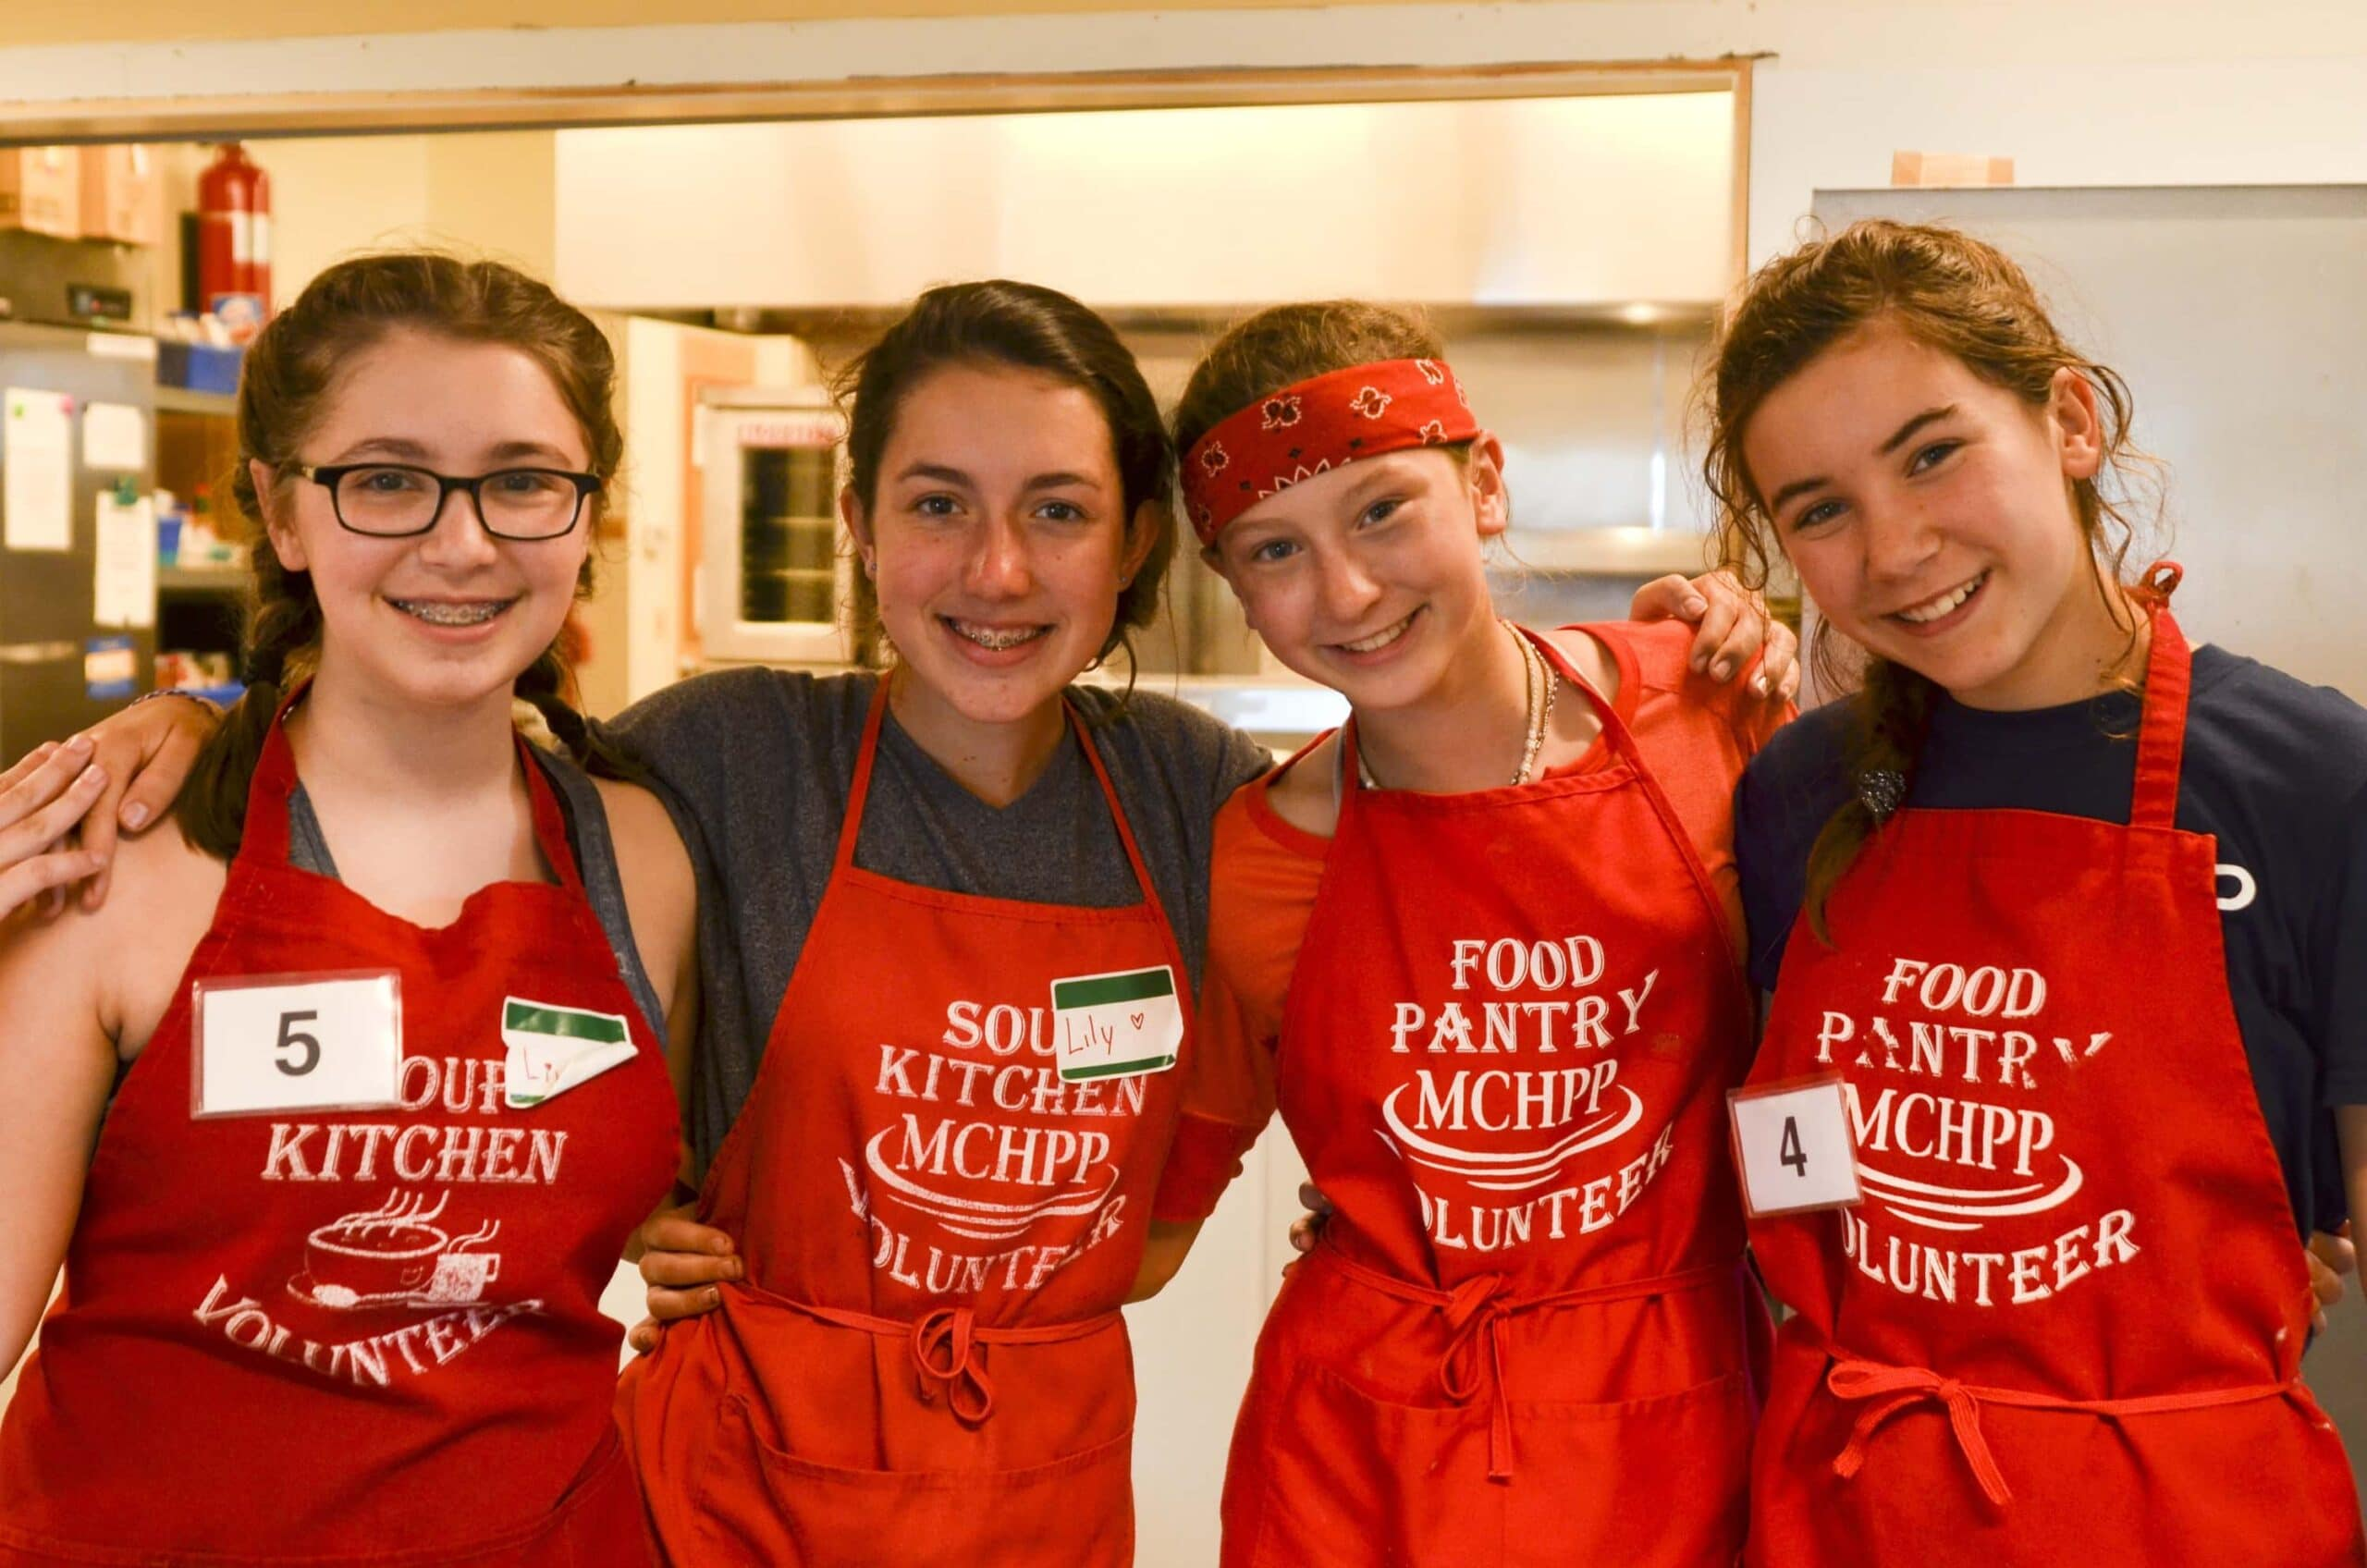 Teens posing and smiling while serving at a food pantry during their service trip to Maine